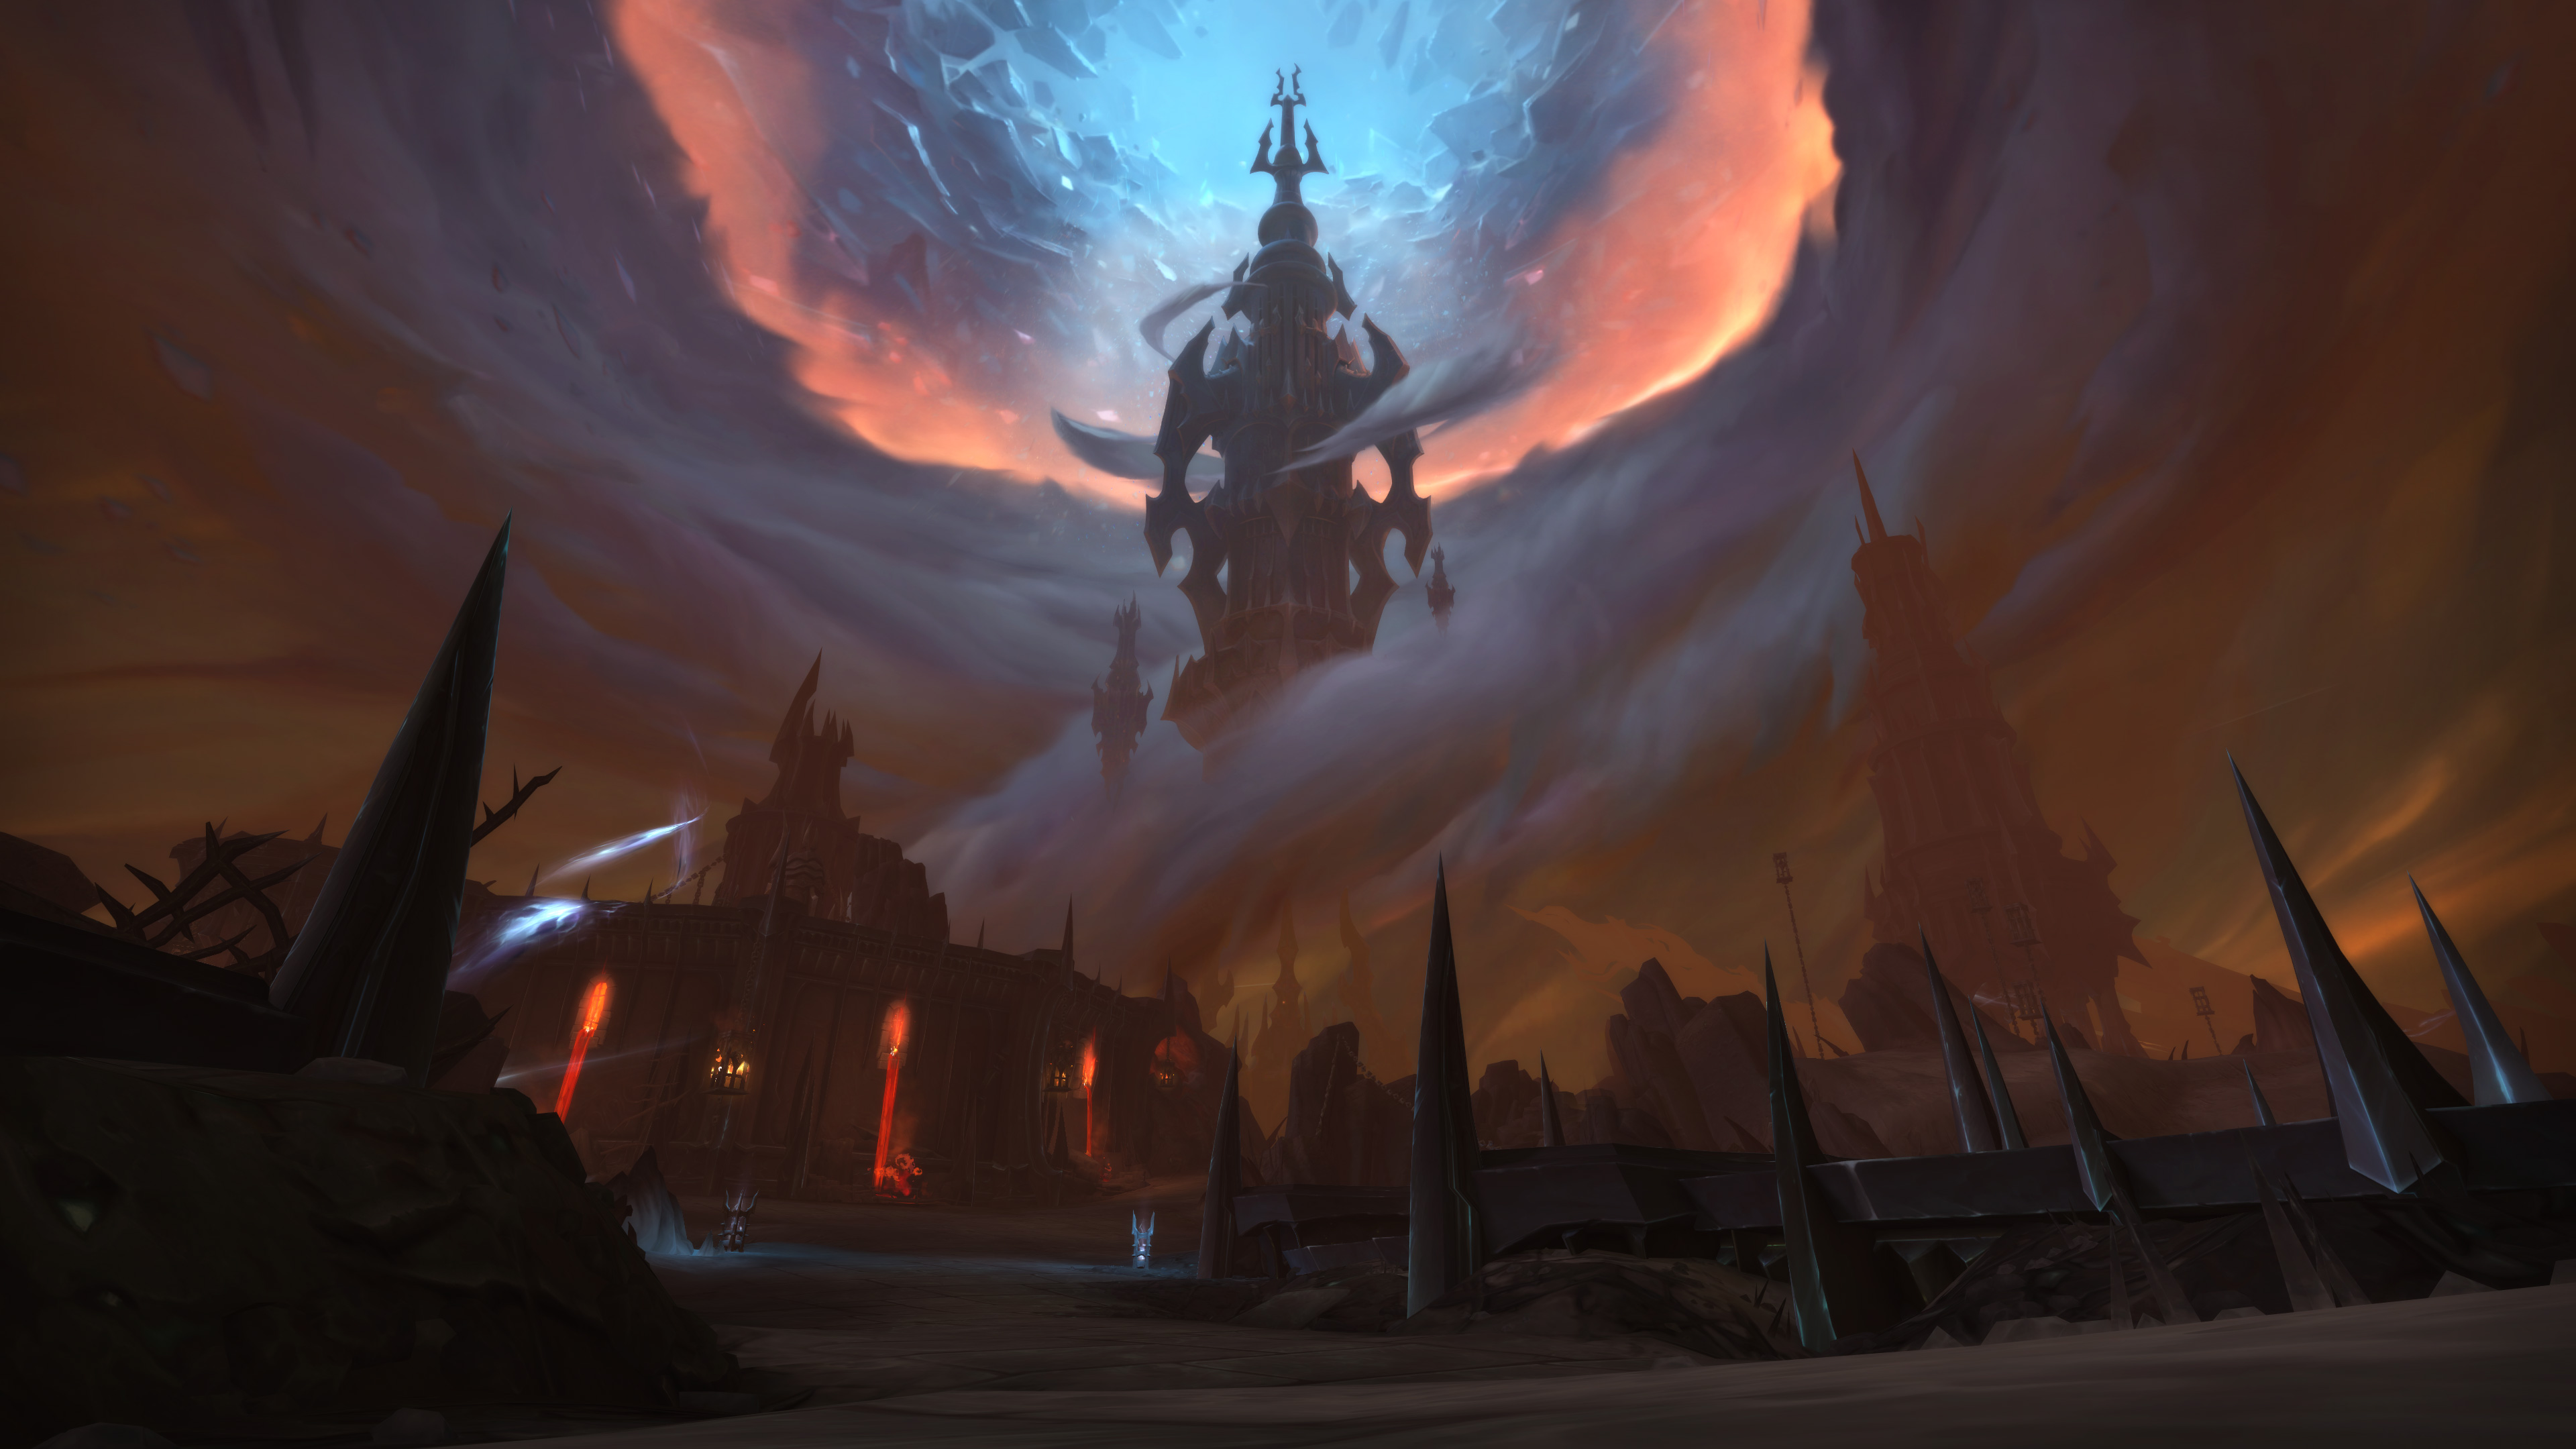 World of Warcraft: Shadowlands - A shot of Torghast in the Maw, which is a tall metal tower in an arid wasteland of smoke and dust.